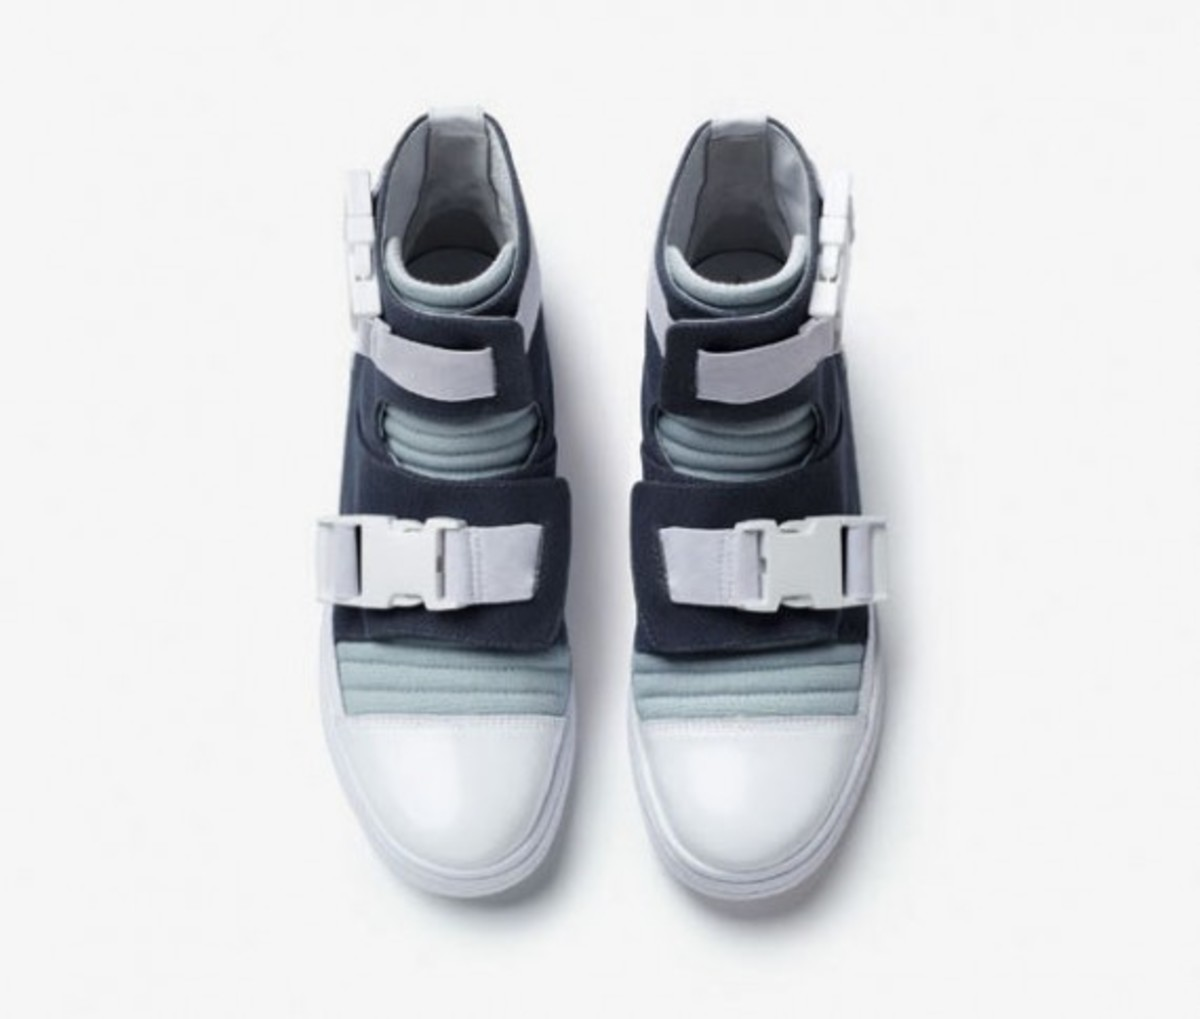 adidas-slvr-ss12-footwear-collection-02